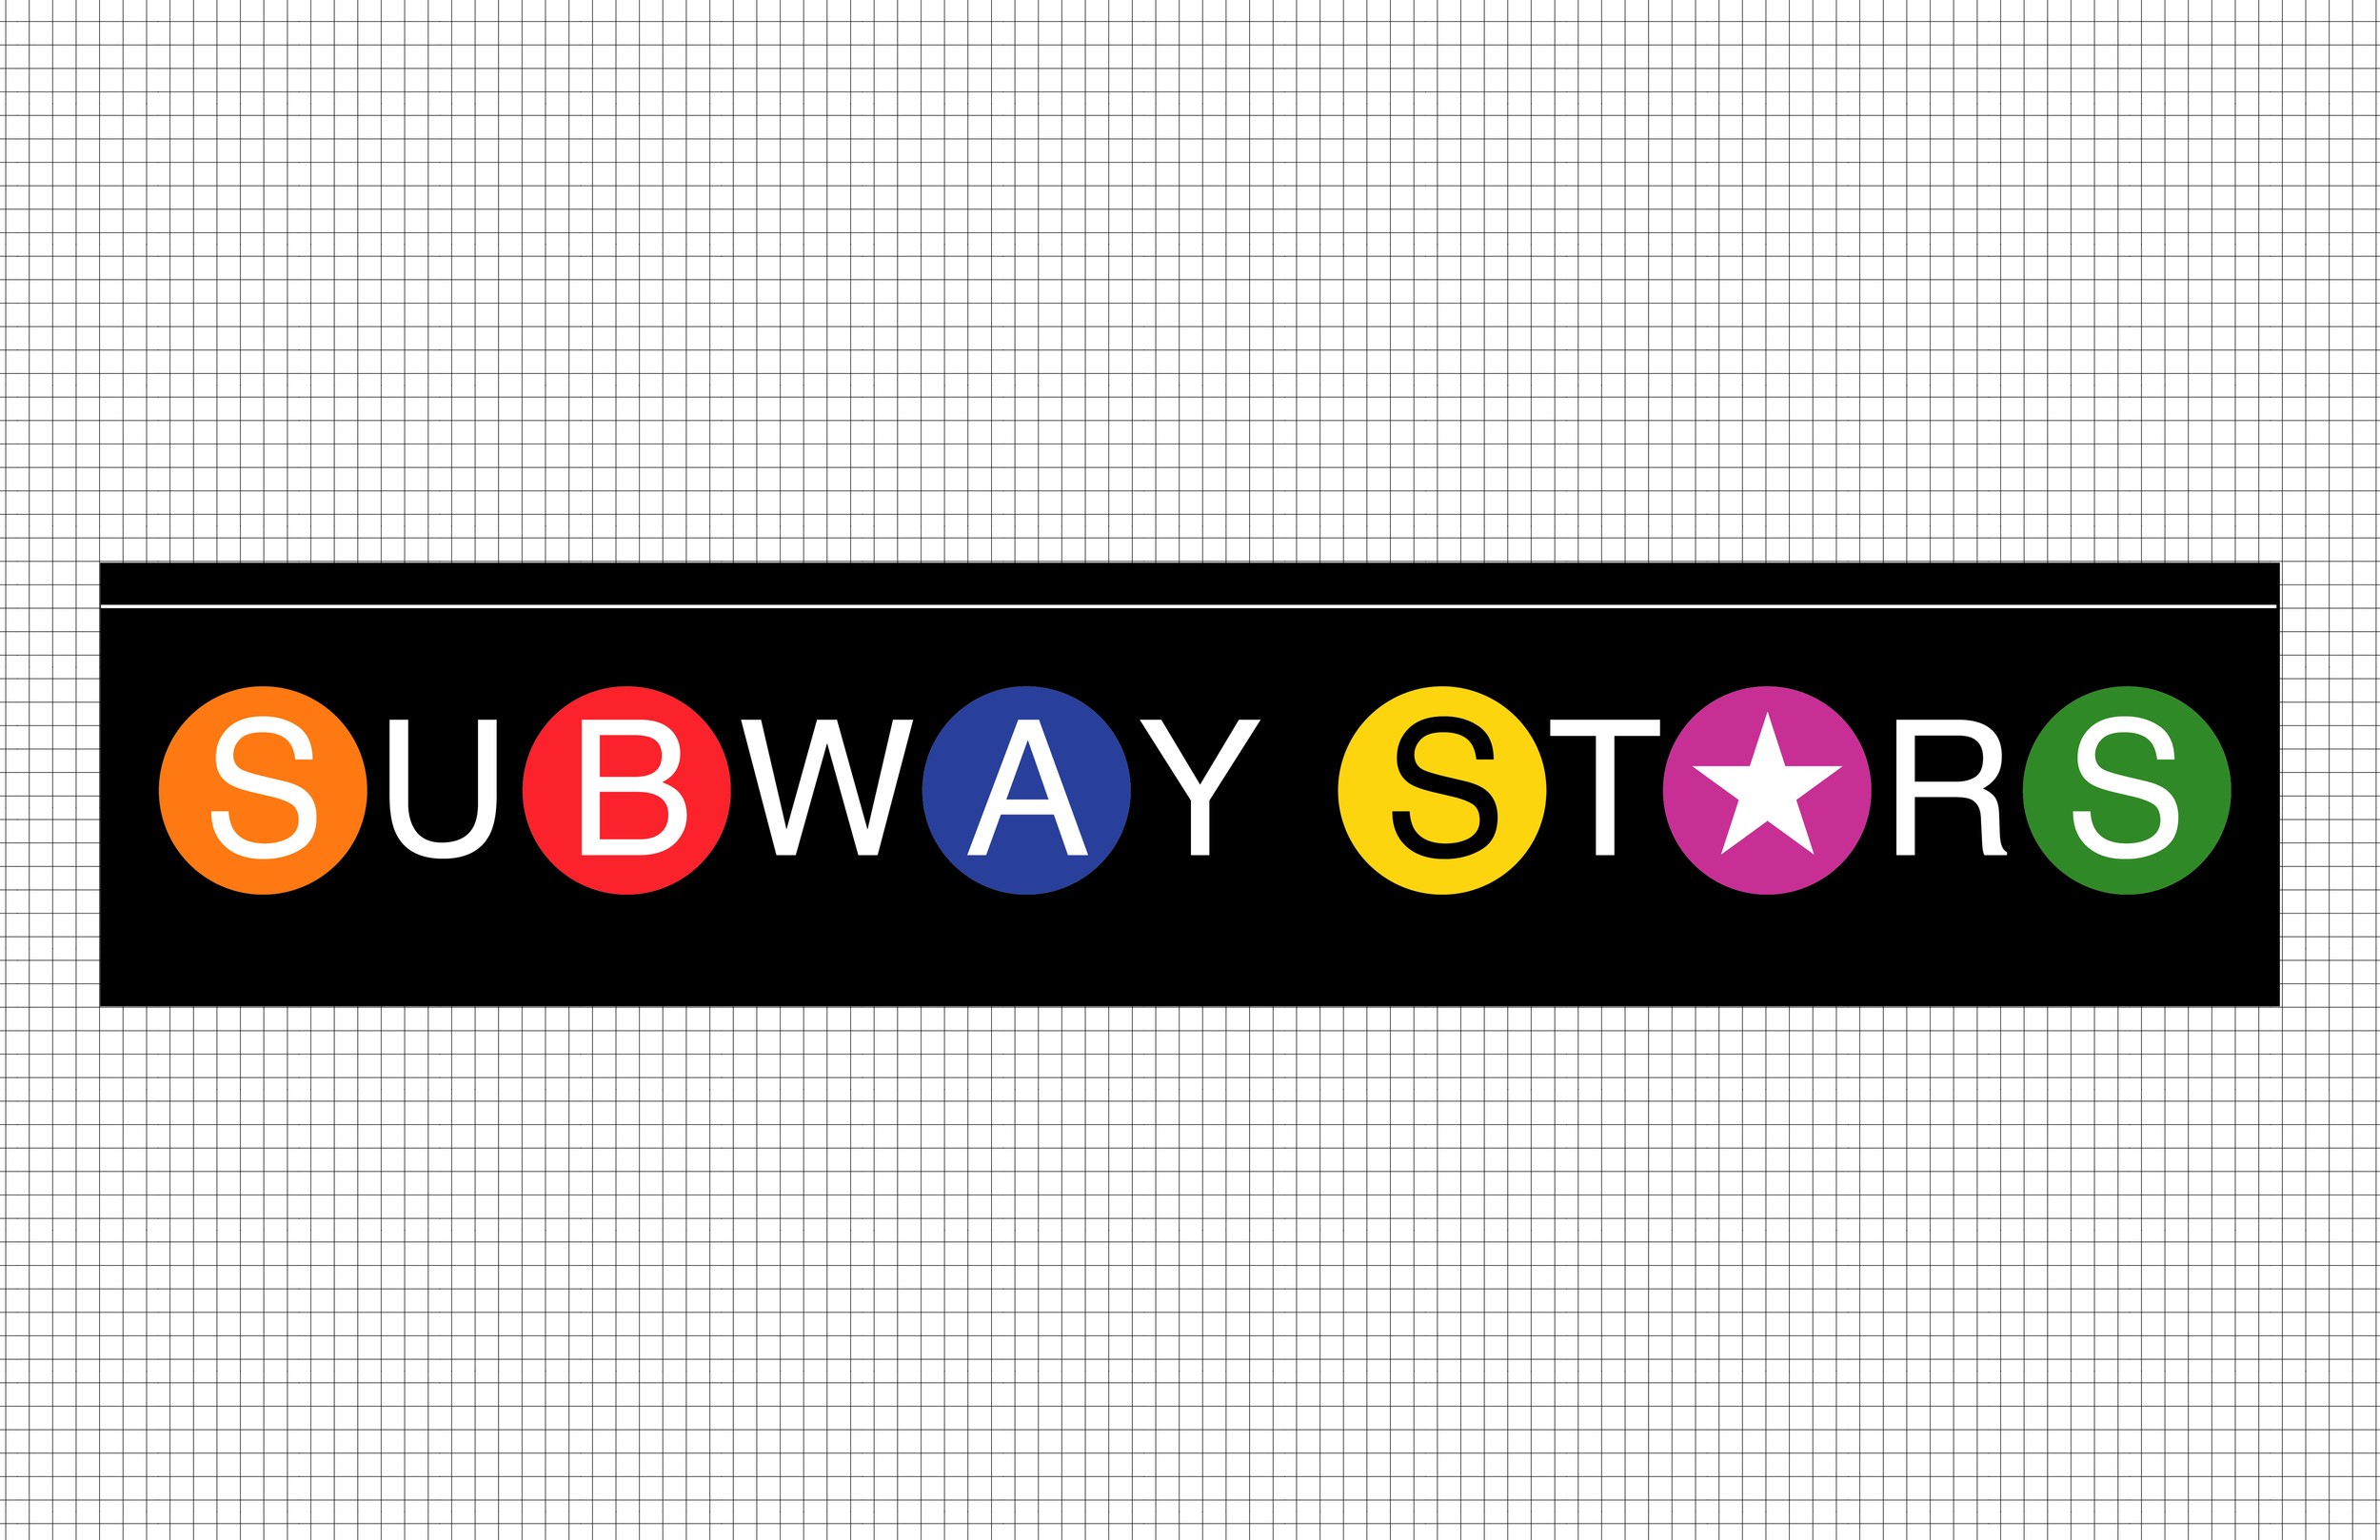 SUBWAY STARS-08.png